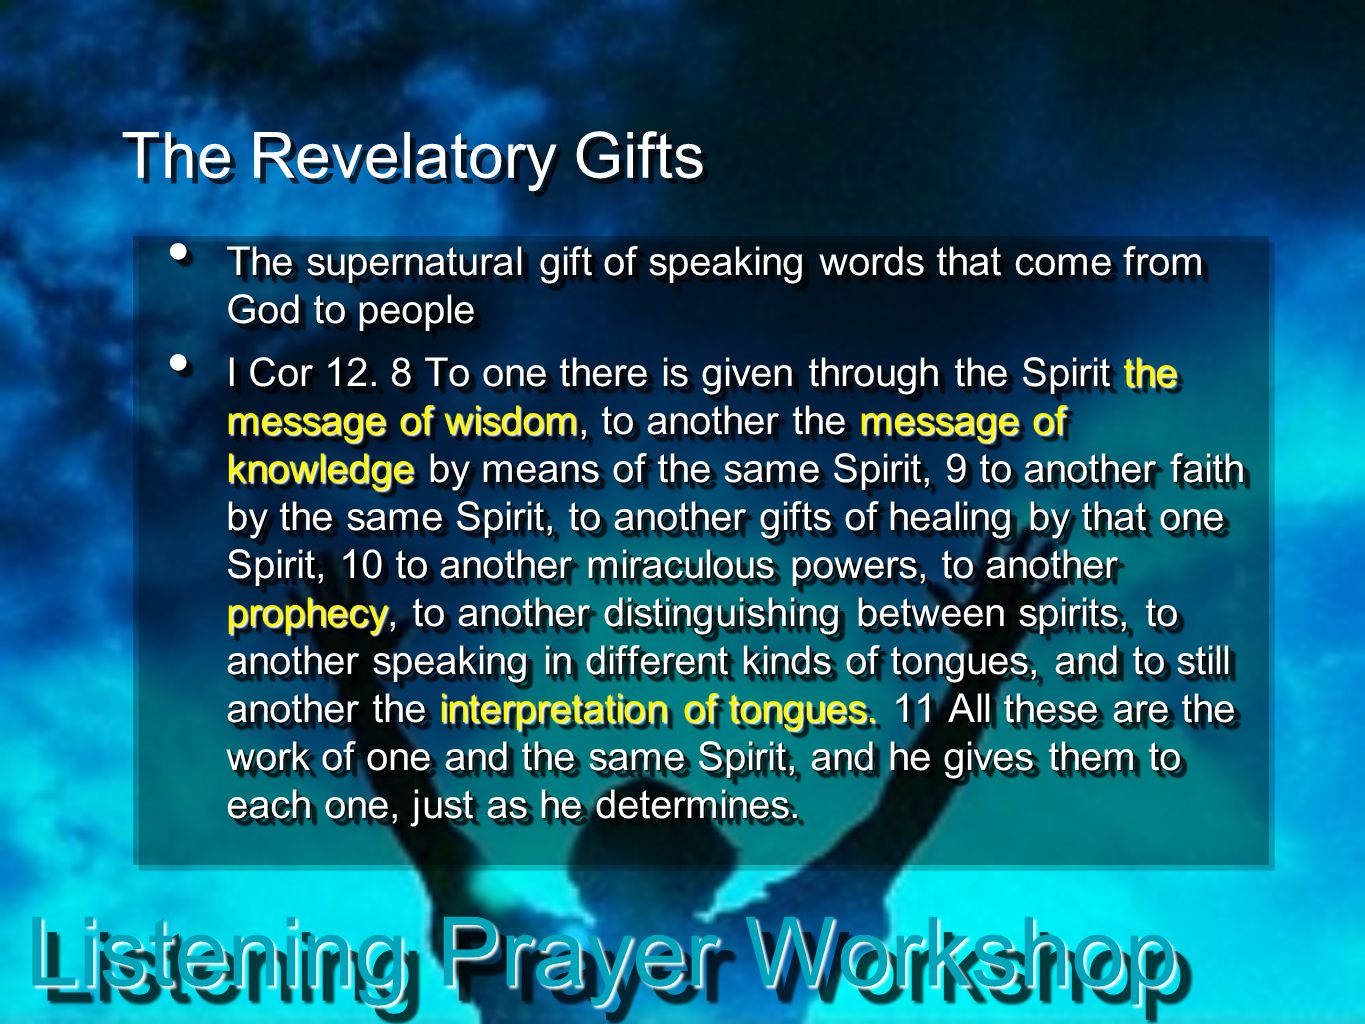 Listening Prayer Workshop Listening to God Prophecy, Word of Wisdom, Word of Knowledge and Interpretation of Tongues